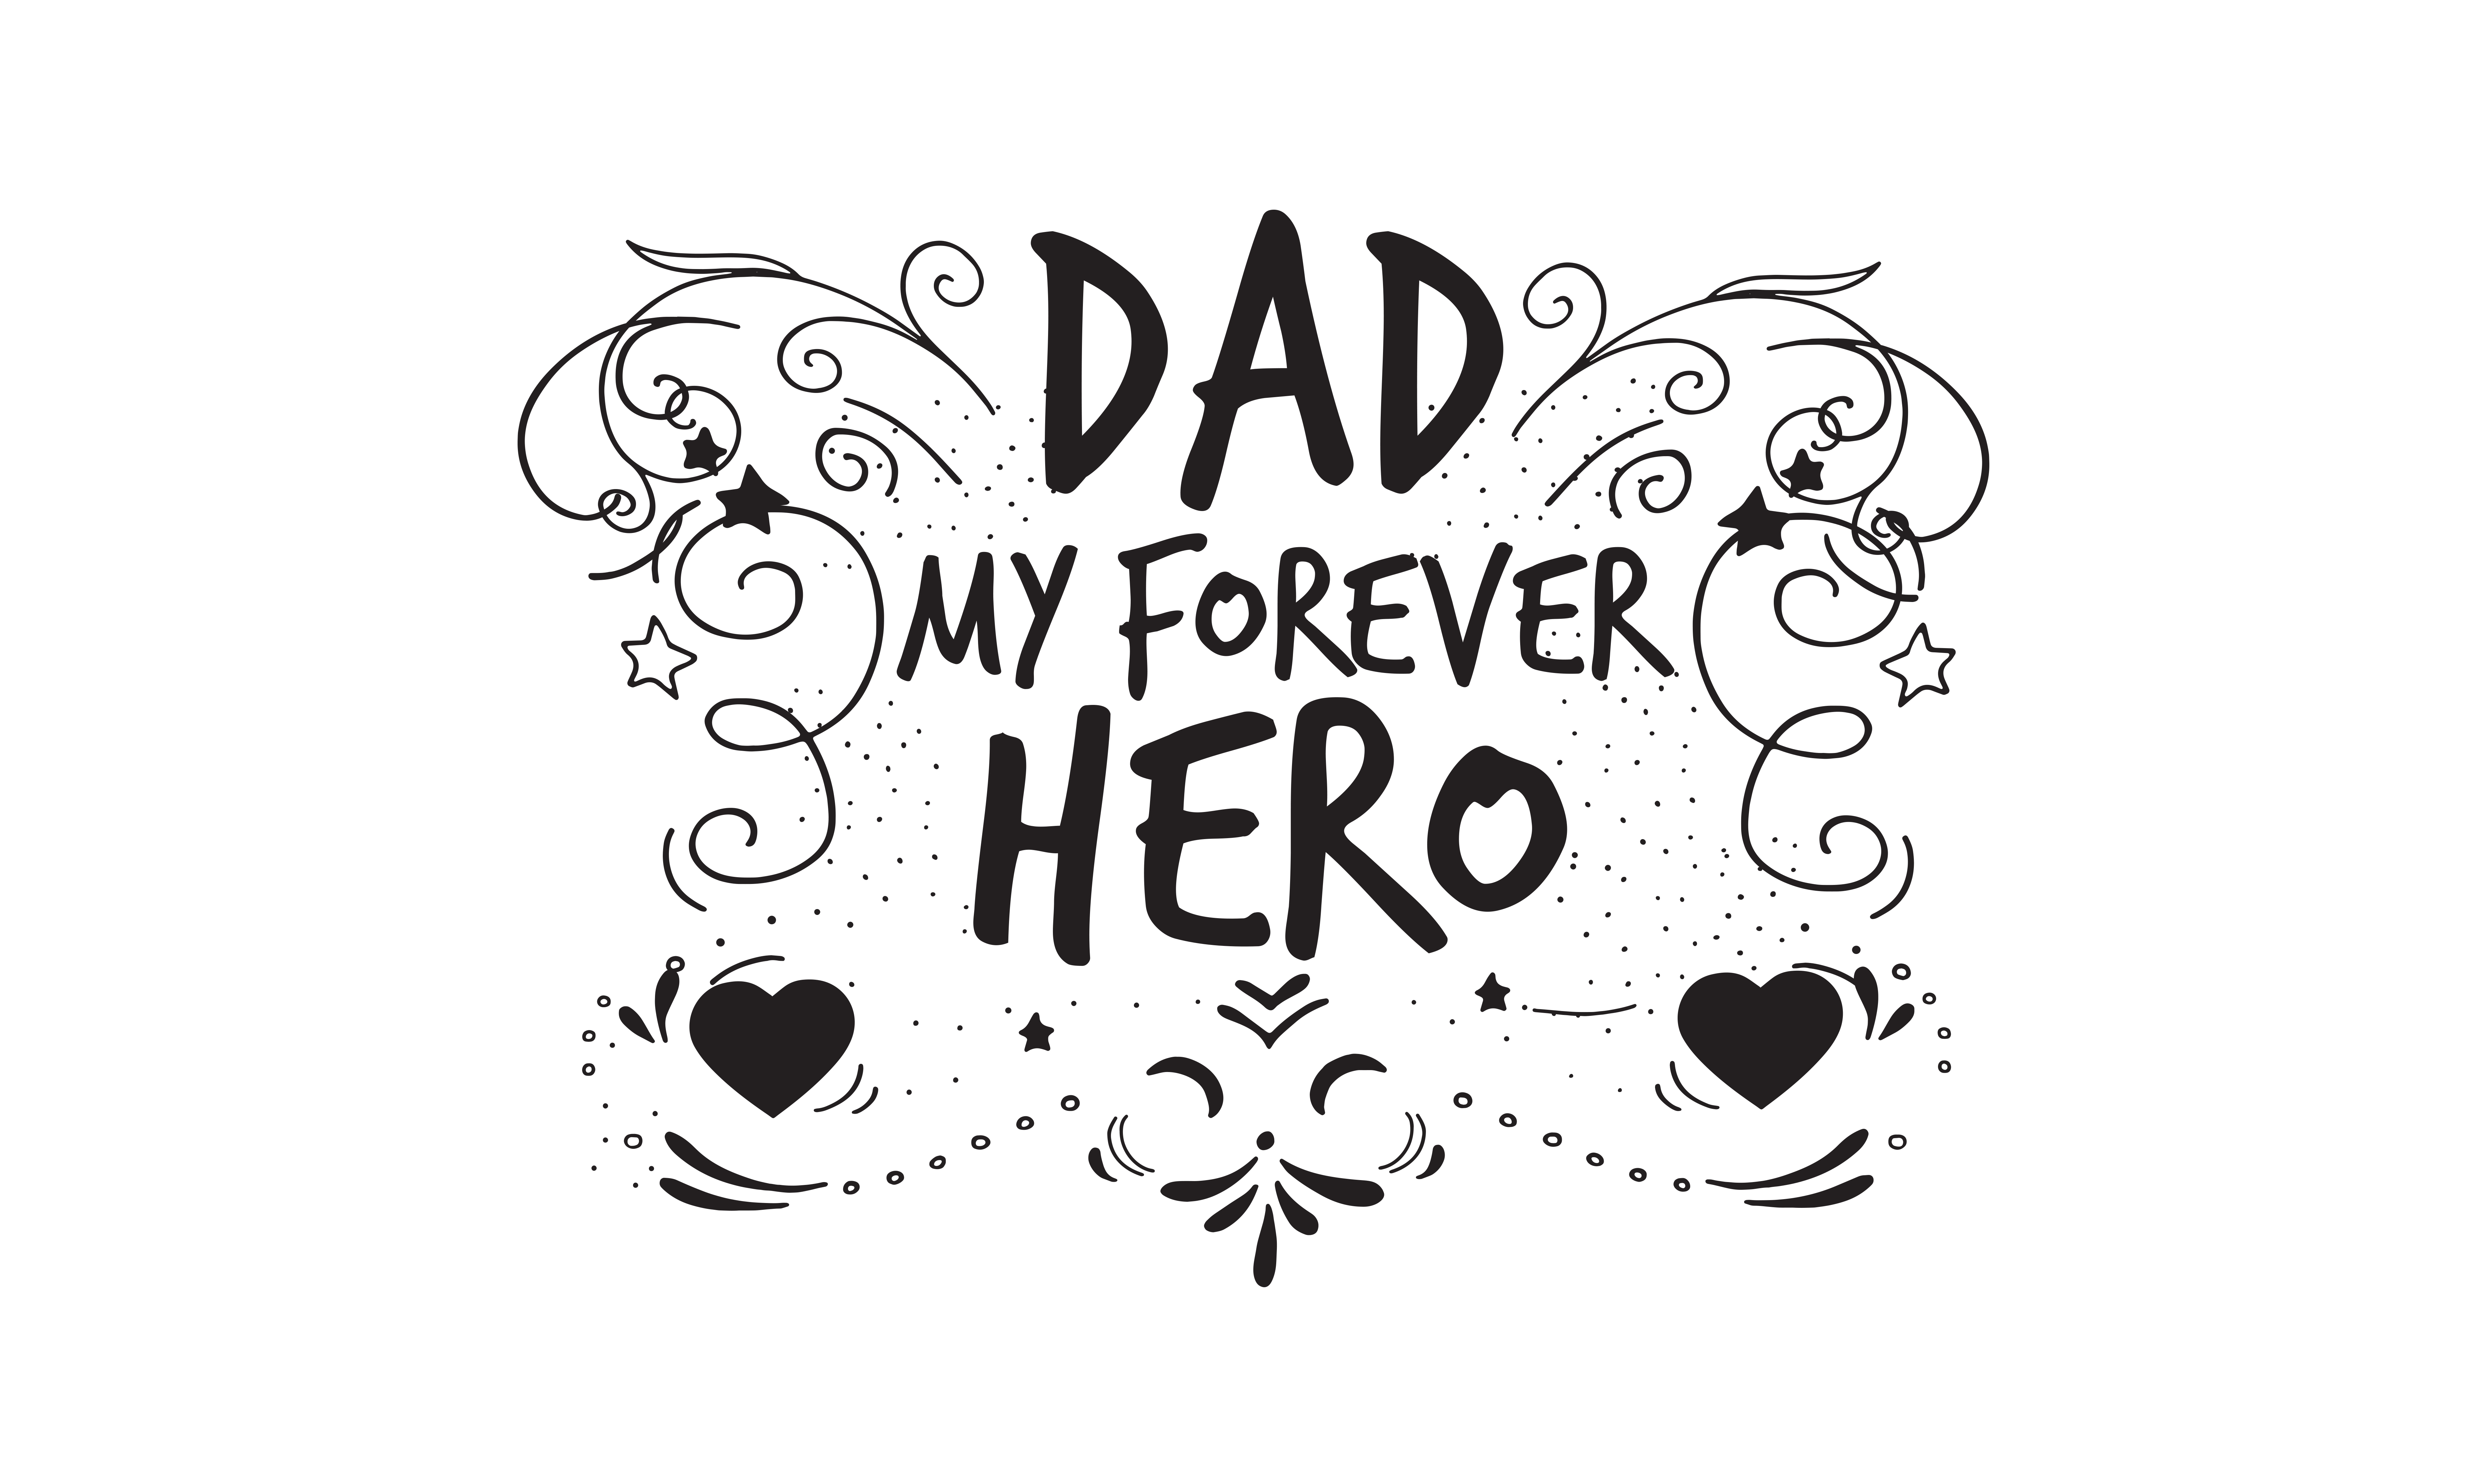 Download Free Dad My Forever Hero Graphic By Baraeiji Creative Fabrica for Cricut Explore, Silhouette and other cutting machines.